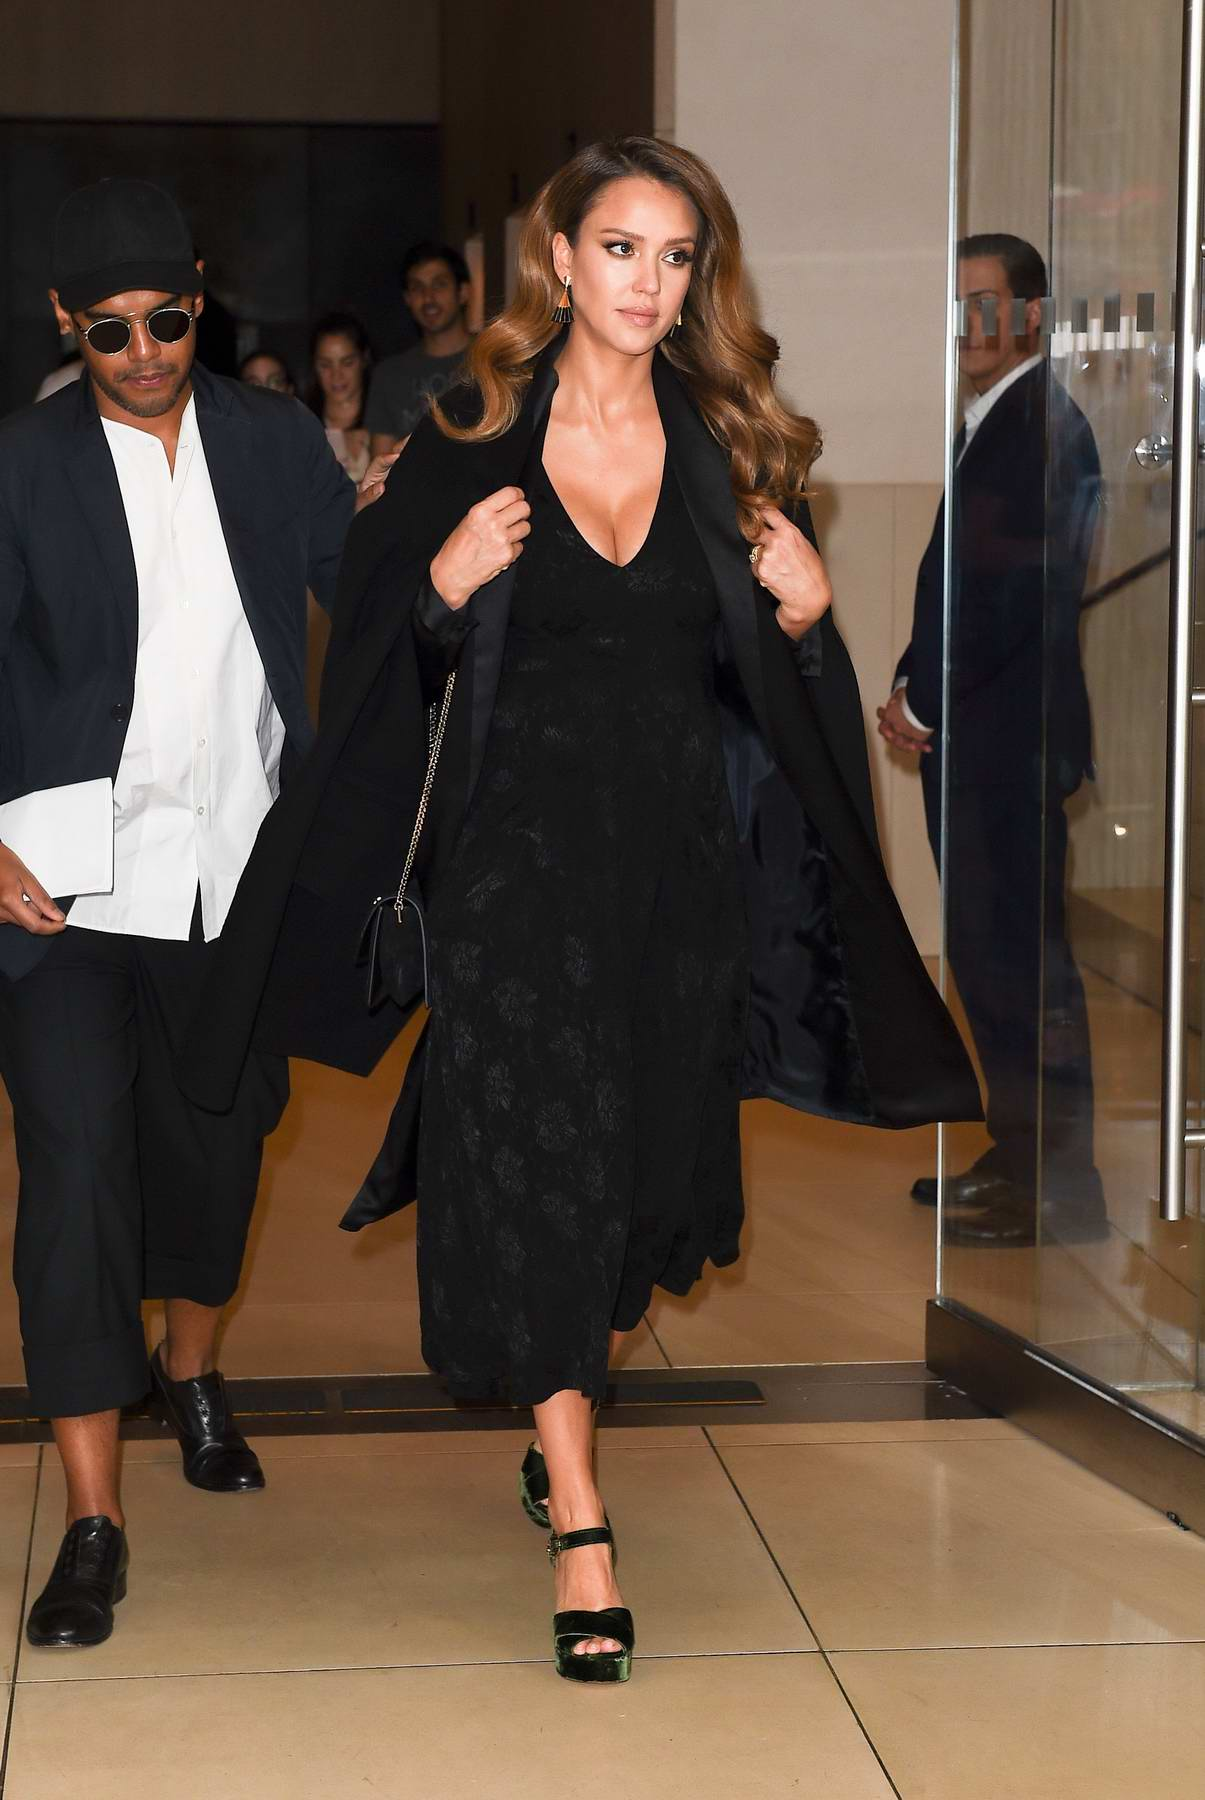 Jessica Alba steps out the Edition Hotel with a friend during NYFW in New York